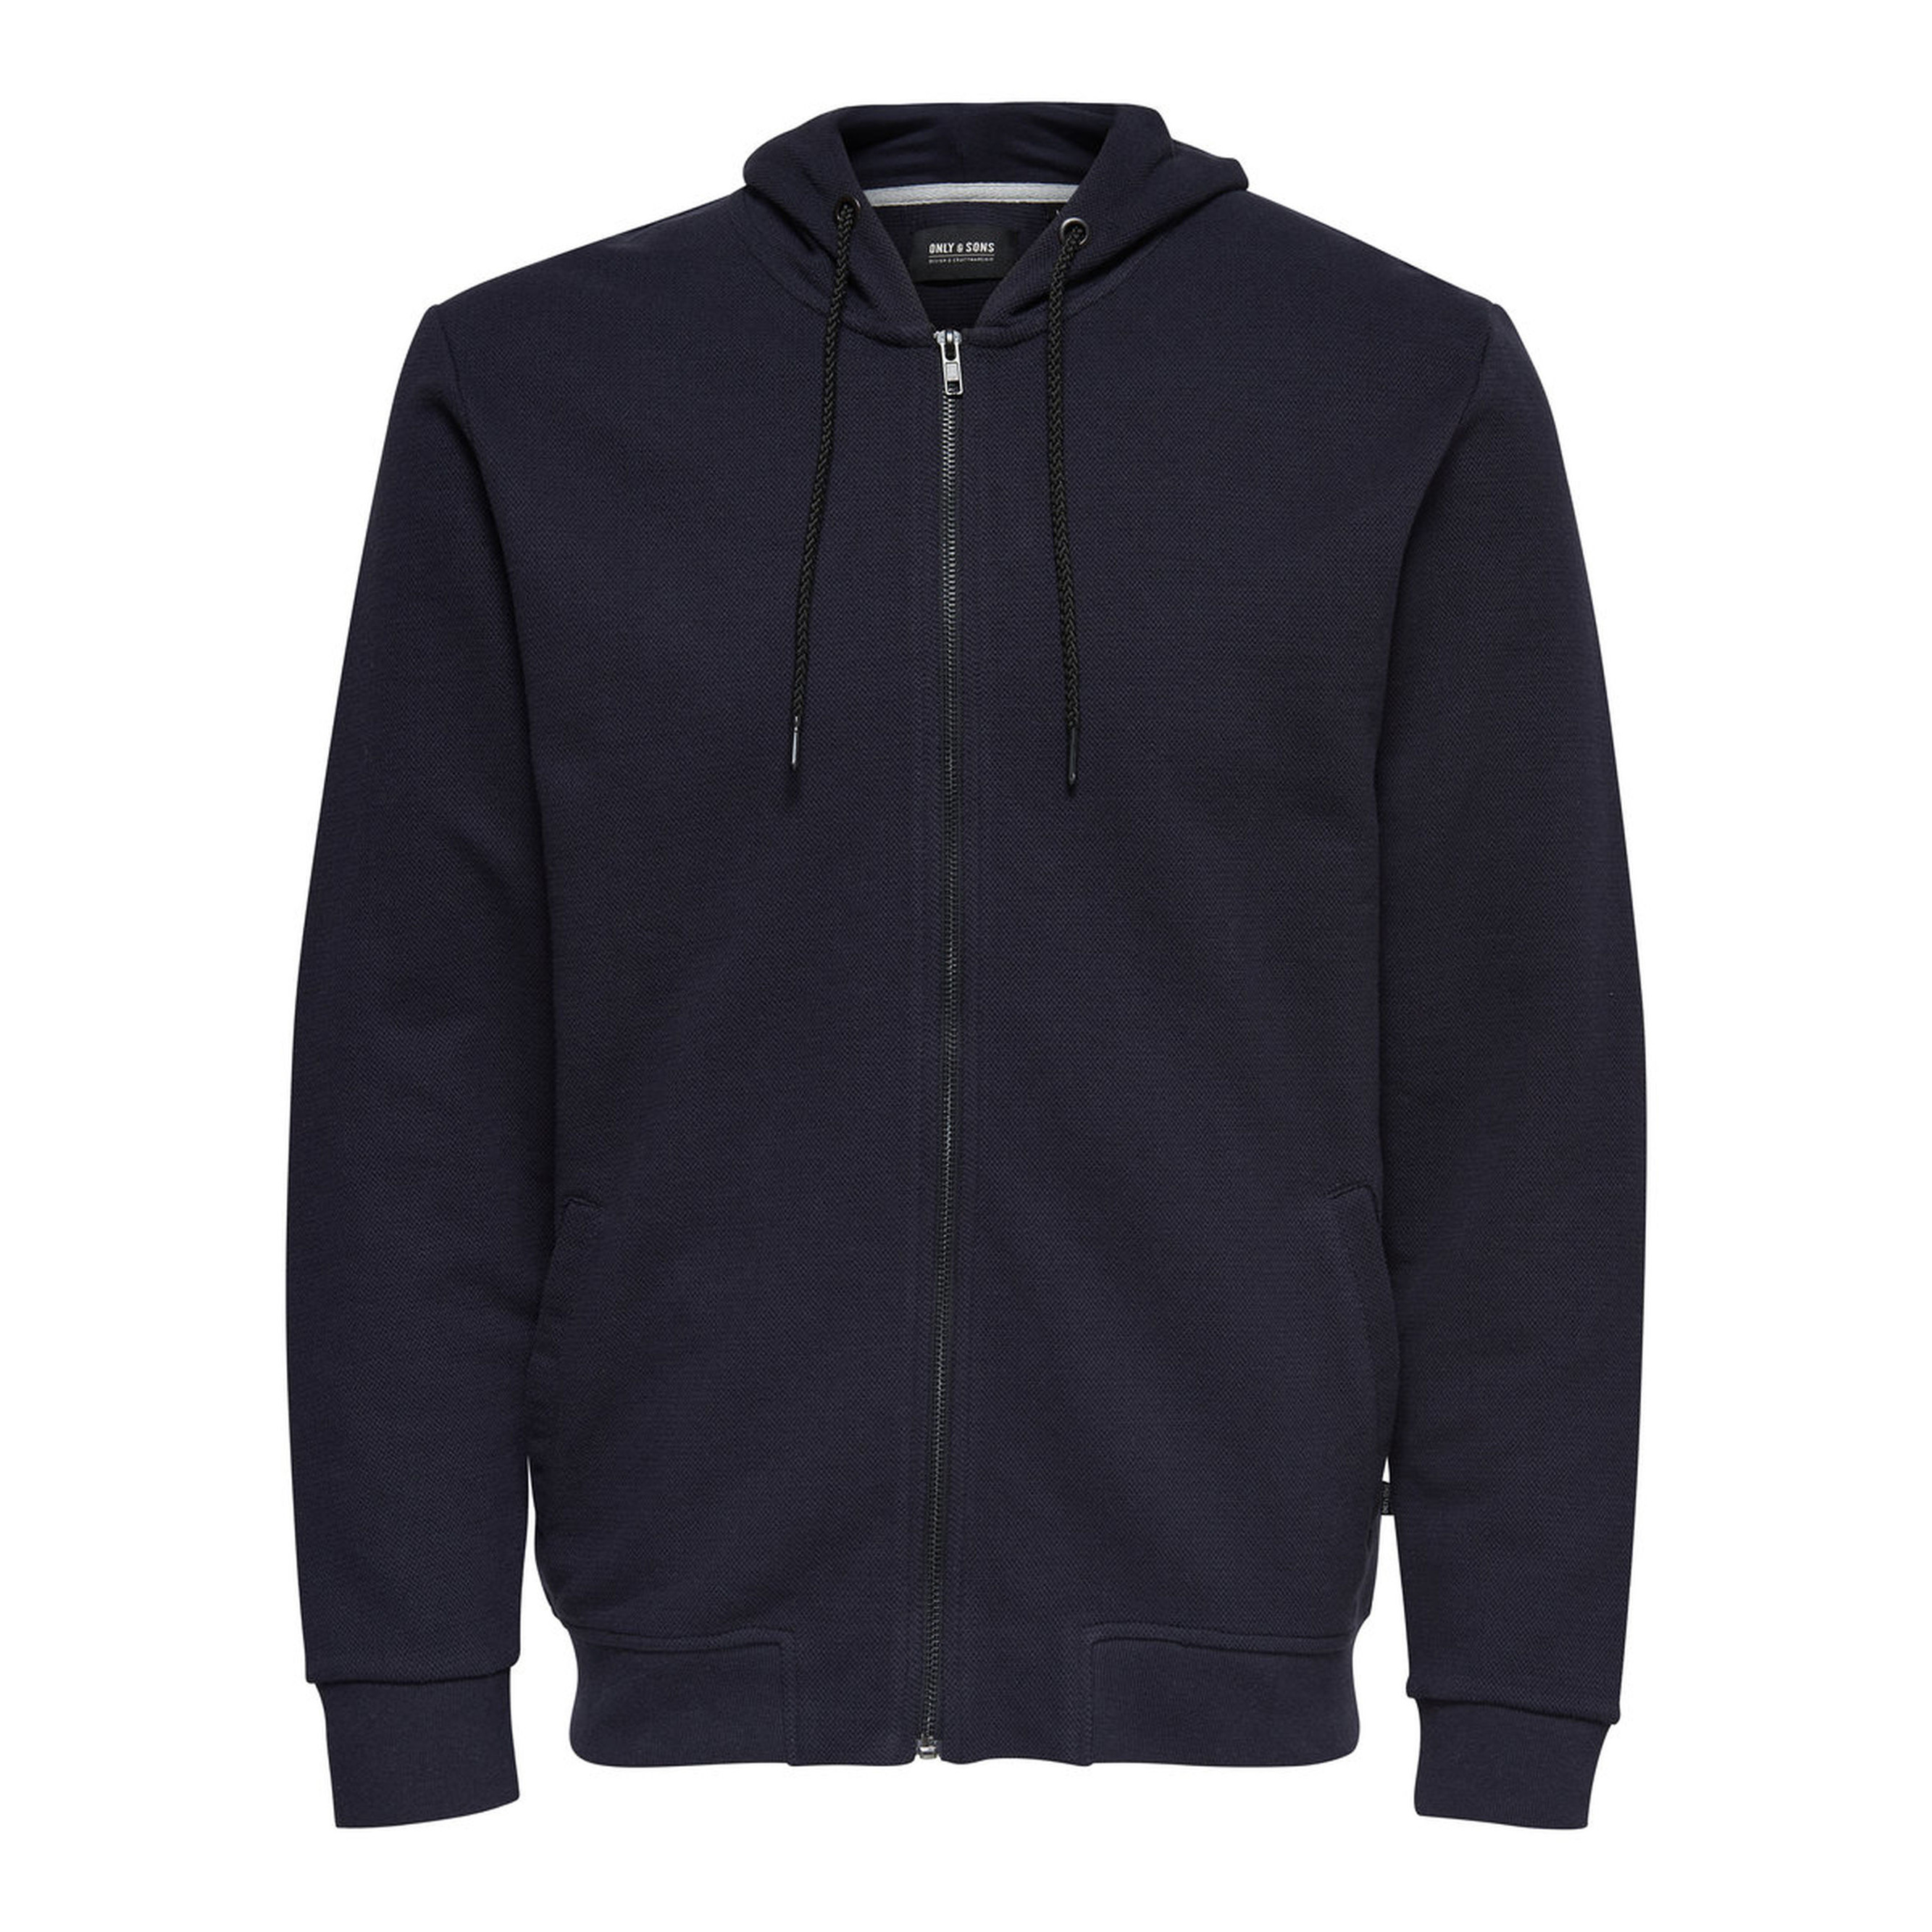 107e6891940 Only   Sons Finlo Men's Zip Up Hoodie Navy Blue